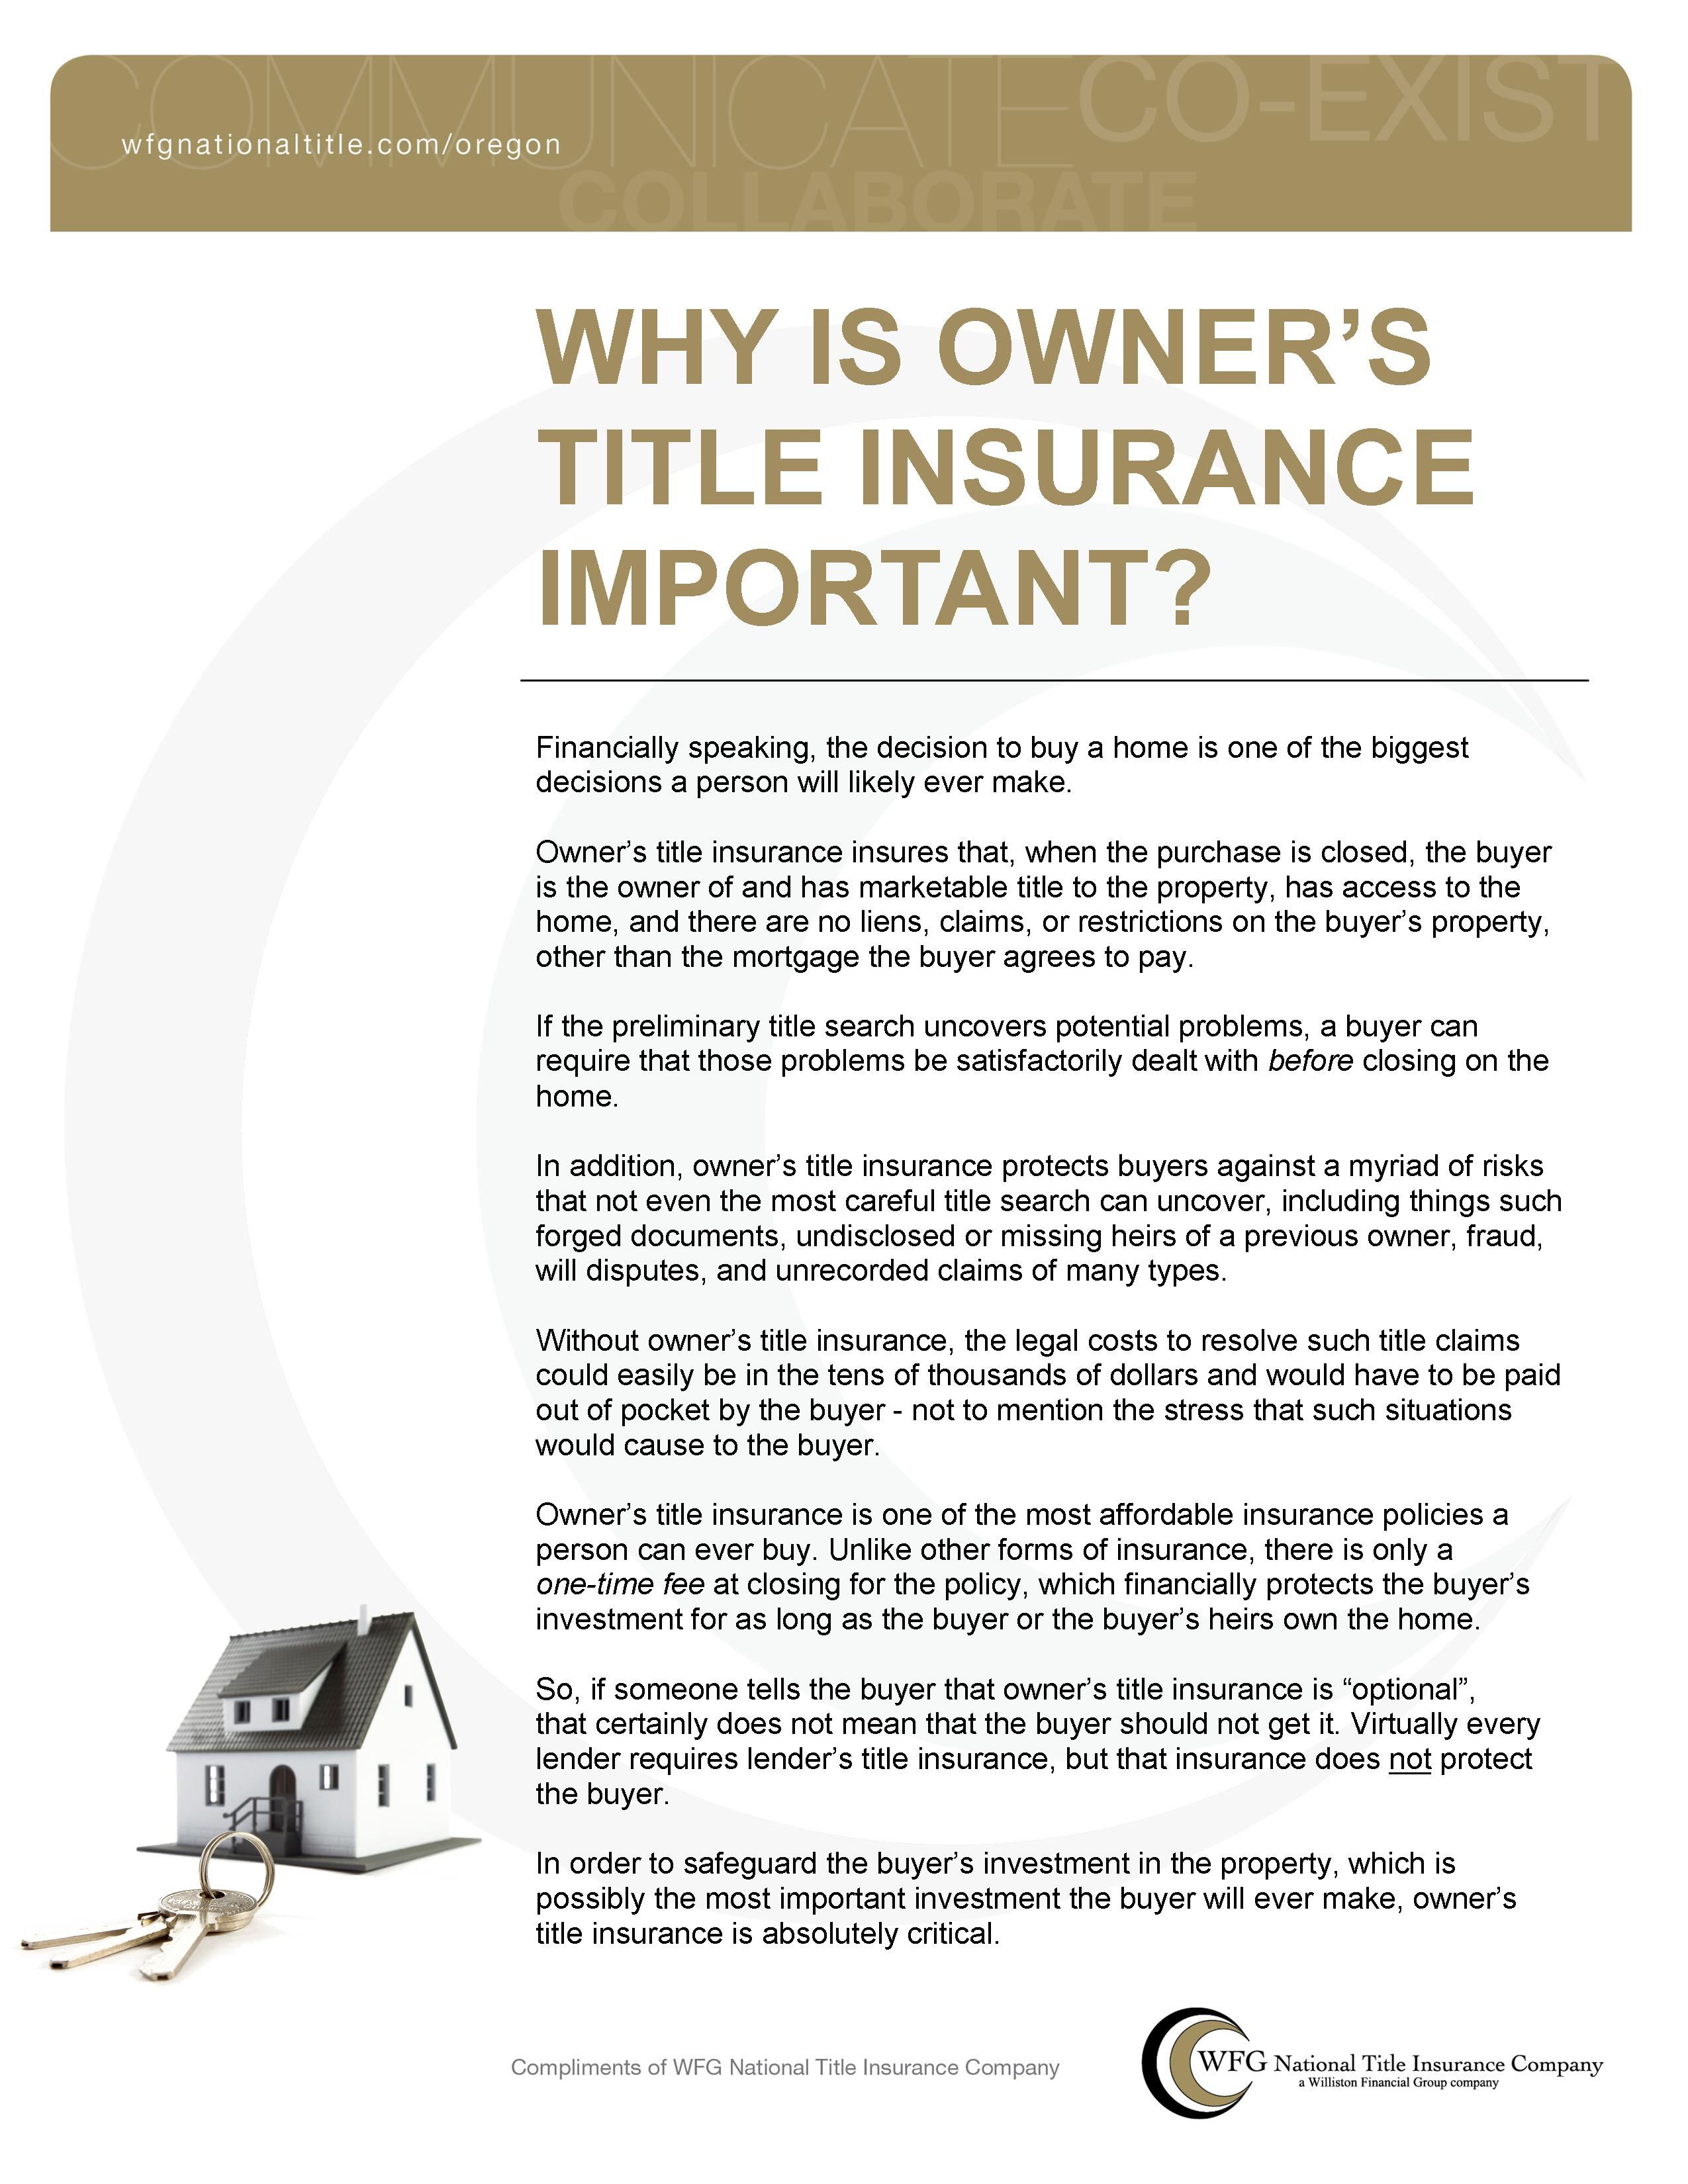 Owners Title Insurance Title Insurance Insurance Marketing